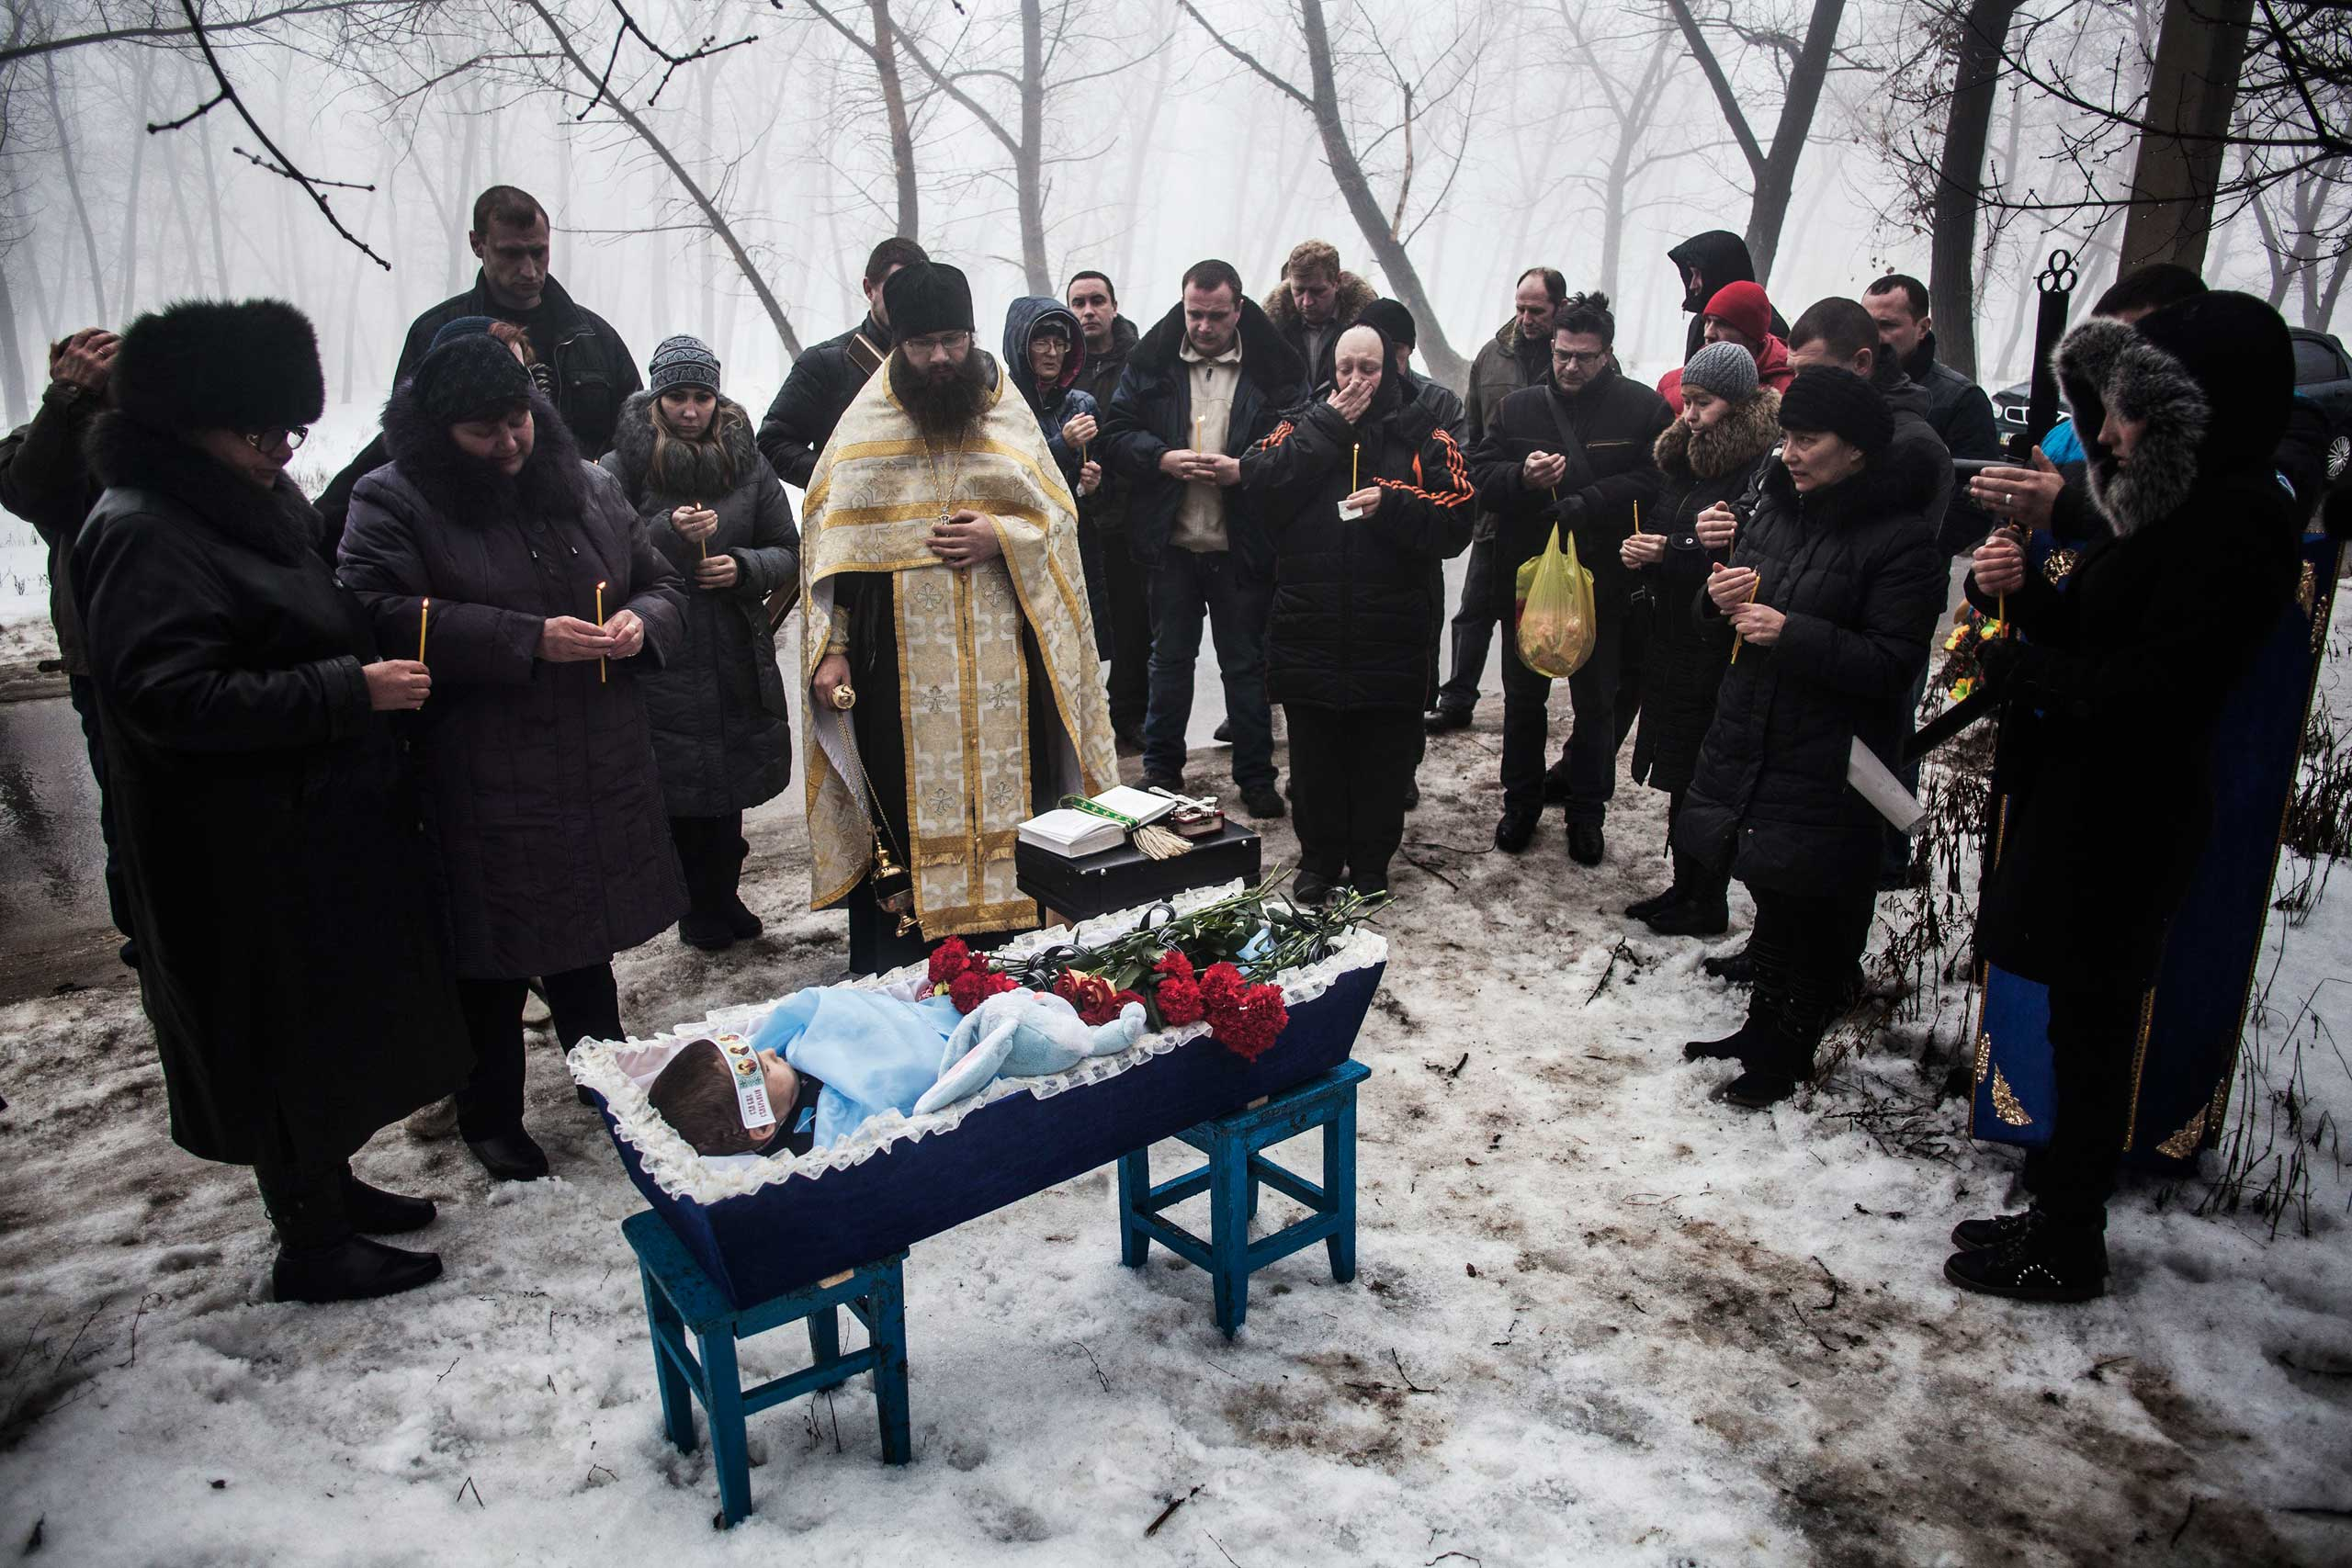 Paris Match L'Instant: In Ukraine, The Frozen Tears of Donetsk Mourners gather around a coffin bearing Artiam, 4, who was killed in a Ukrainian army artillery strike, during his funeral in Kuivisevsky district on the outskirts of Donetsk, eastern Ukraine, Jan. 20, 2015.